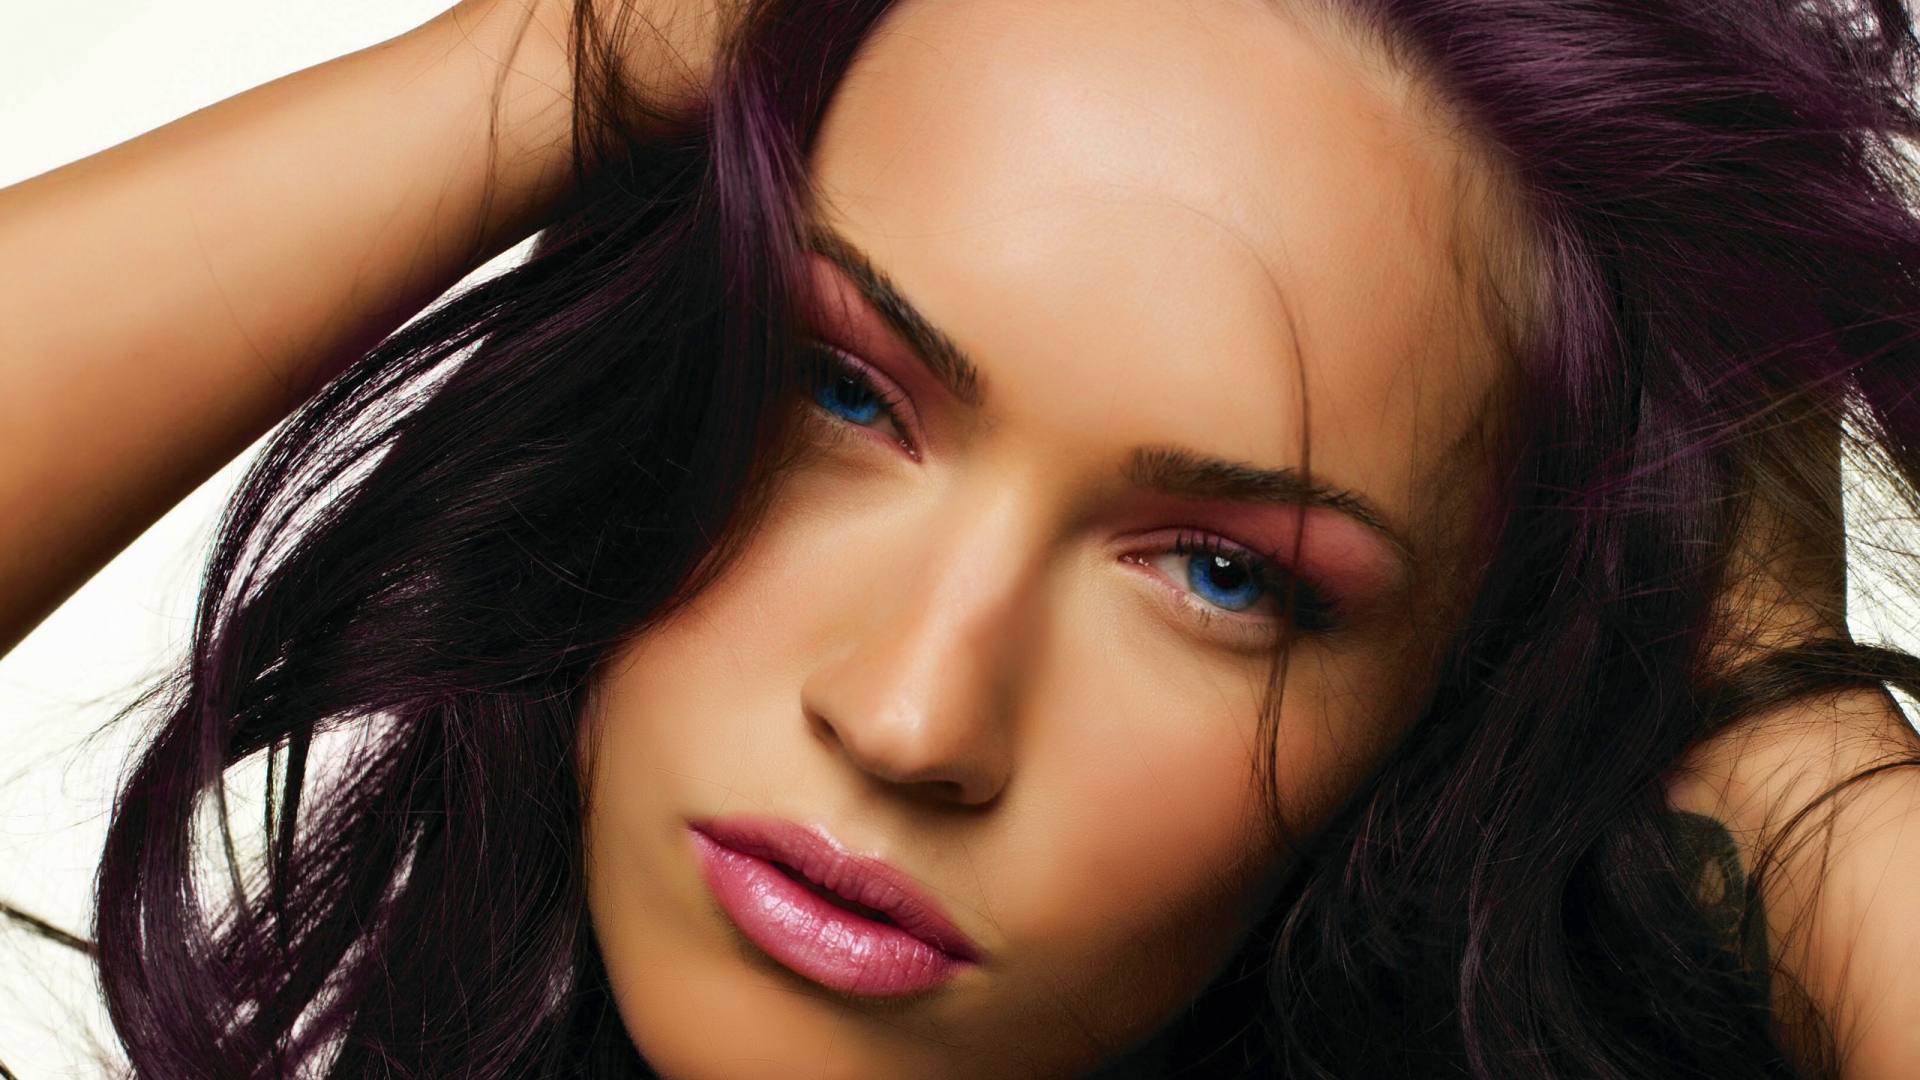 http://4.bp.blogspot.com/-QfjEpoN0HC4/UBl3E3oH-mI/AAAAAAAAE5c/DAUJFiGQFqI/s0/megan-fox-close-up-1920x1080-wallpaper.jpg